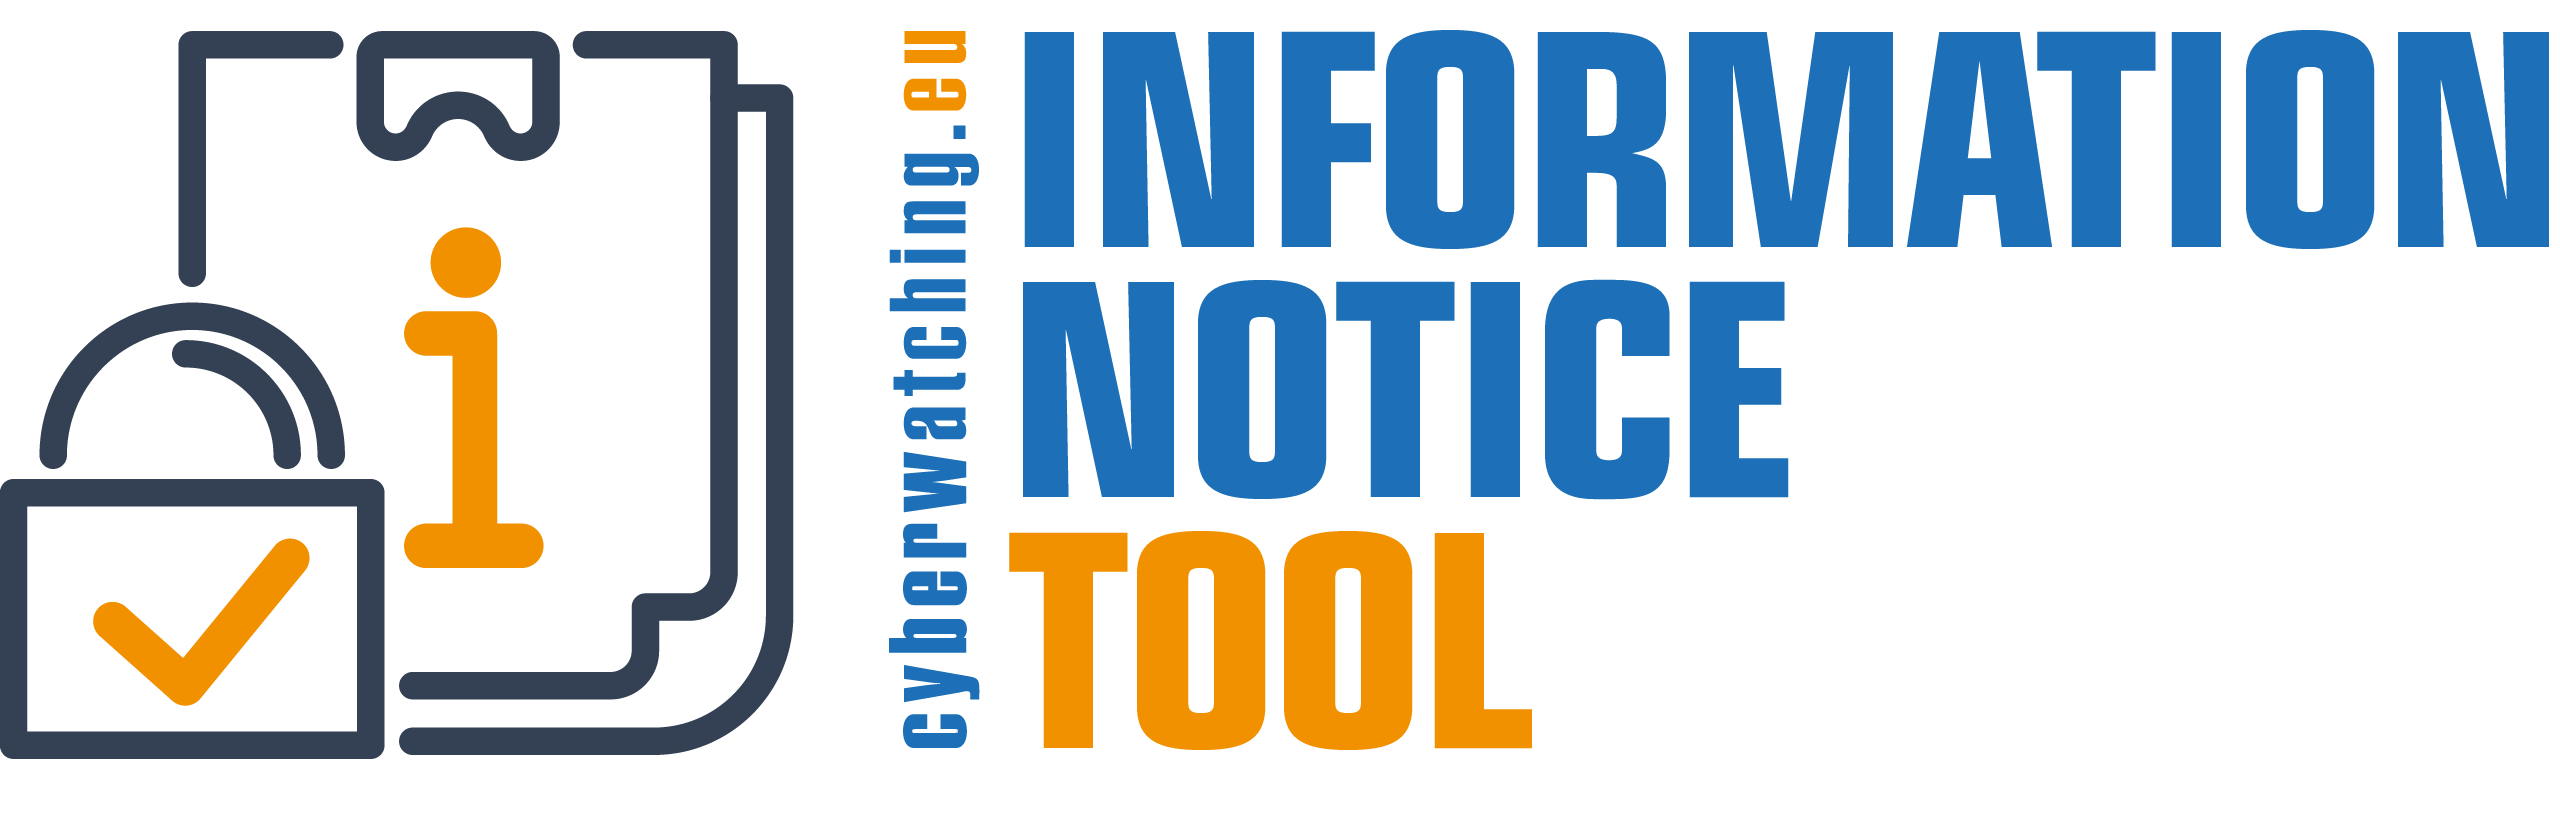 Information Notice Tool.png